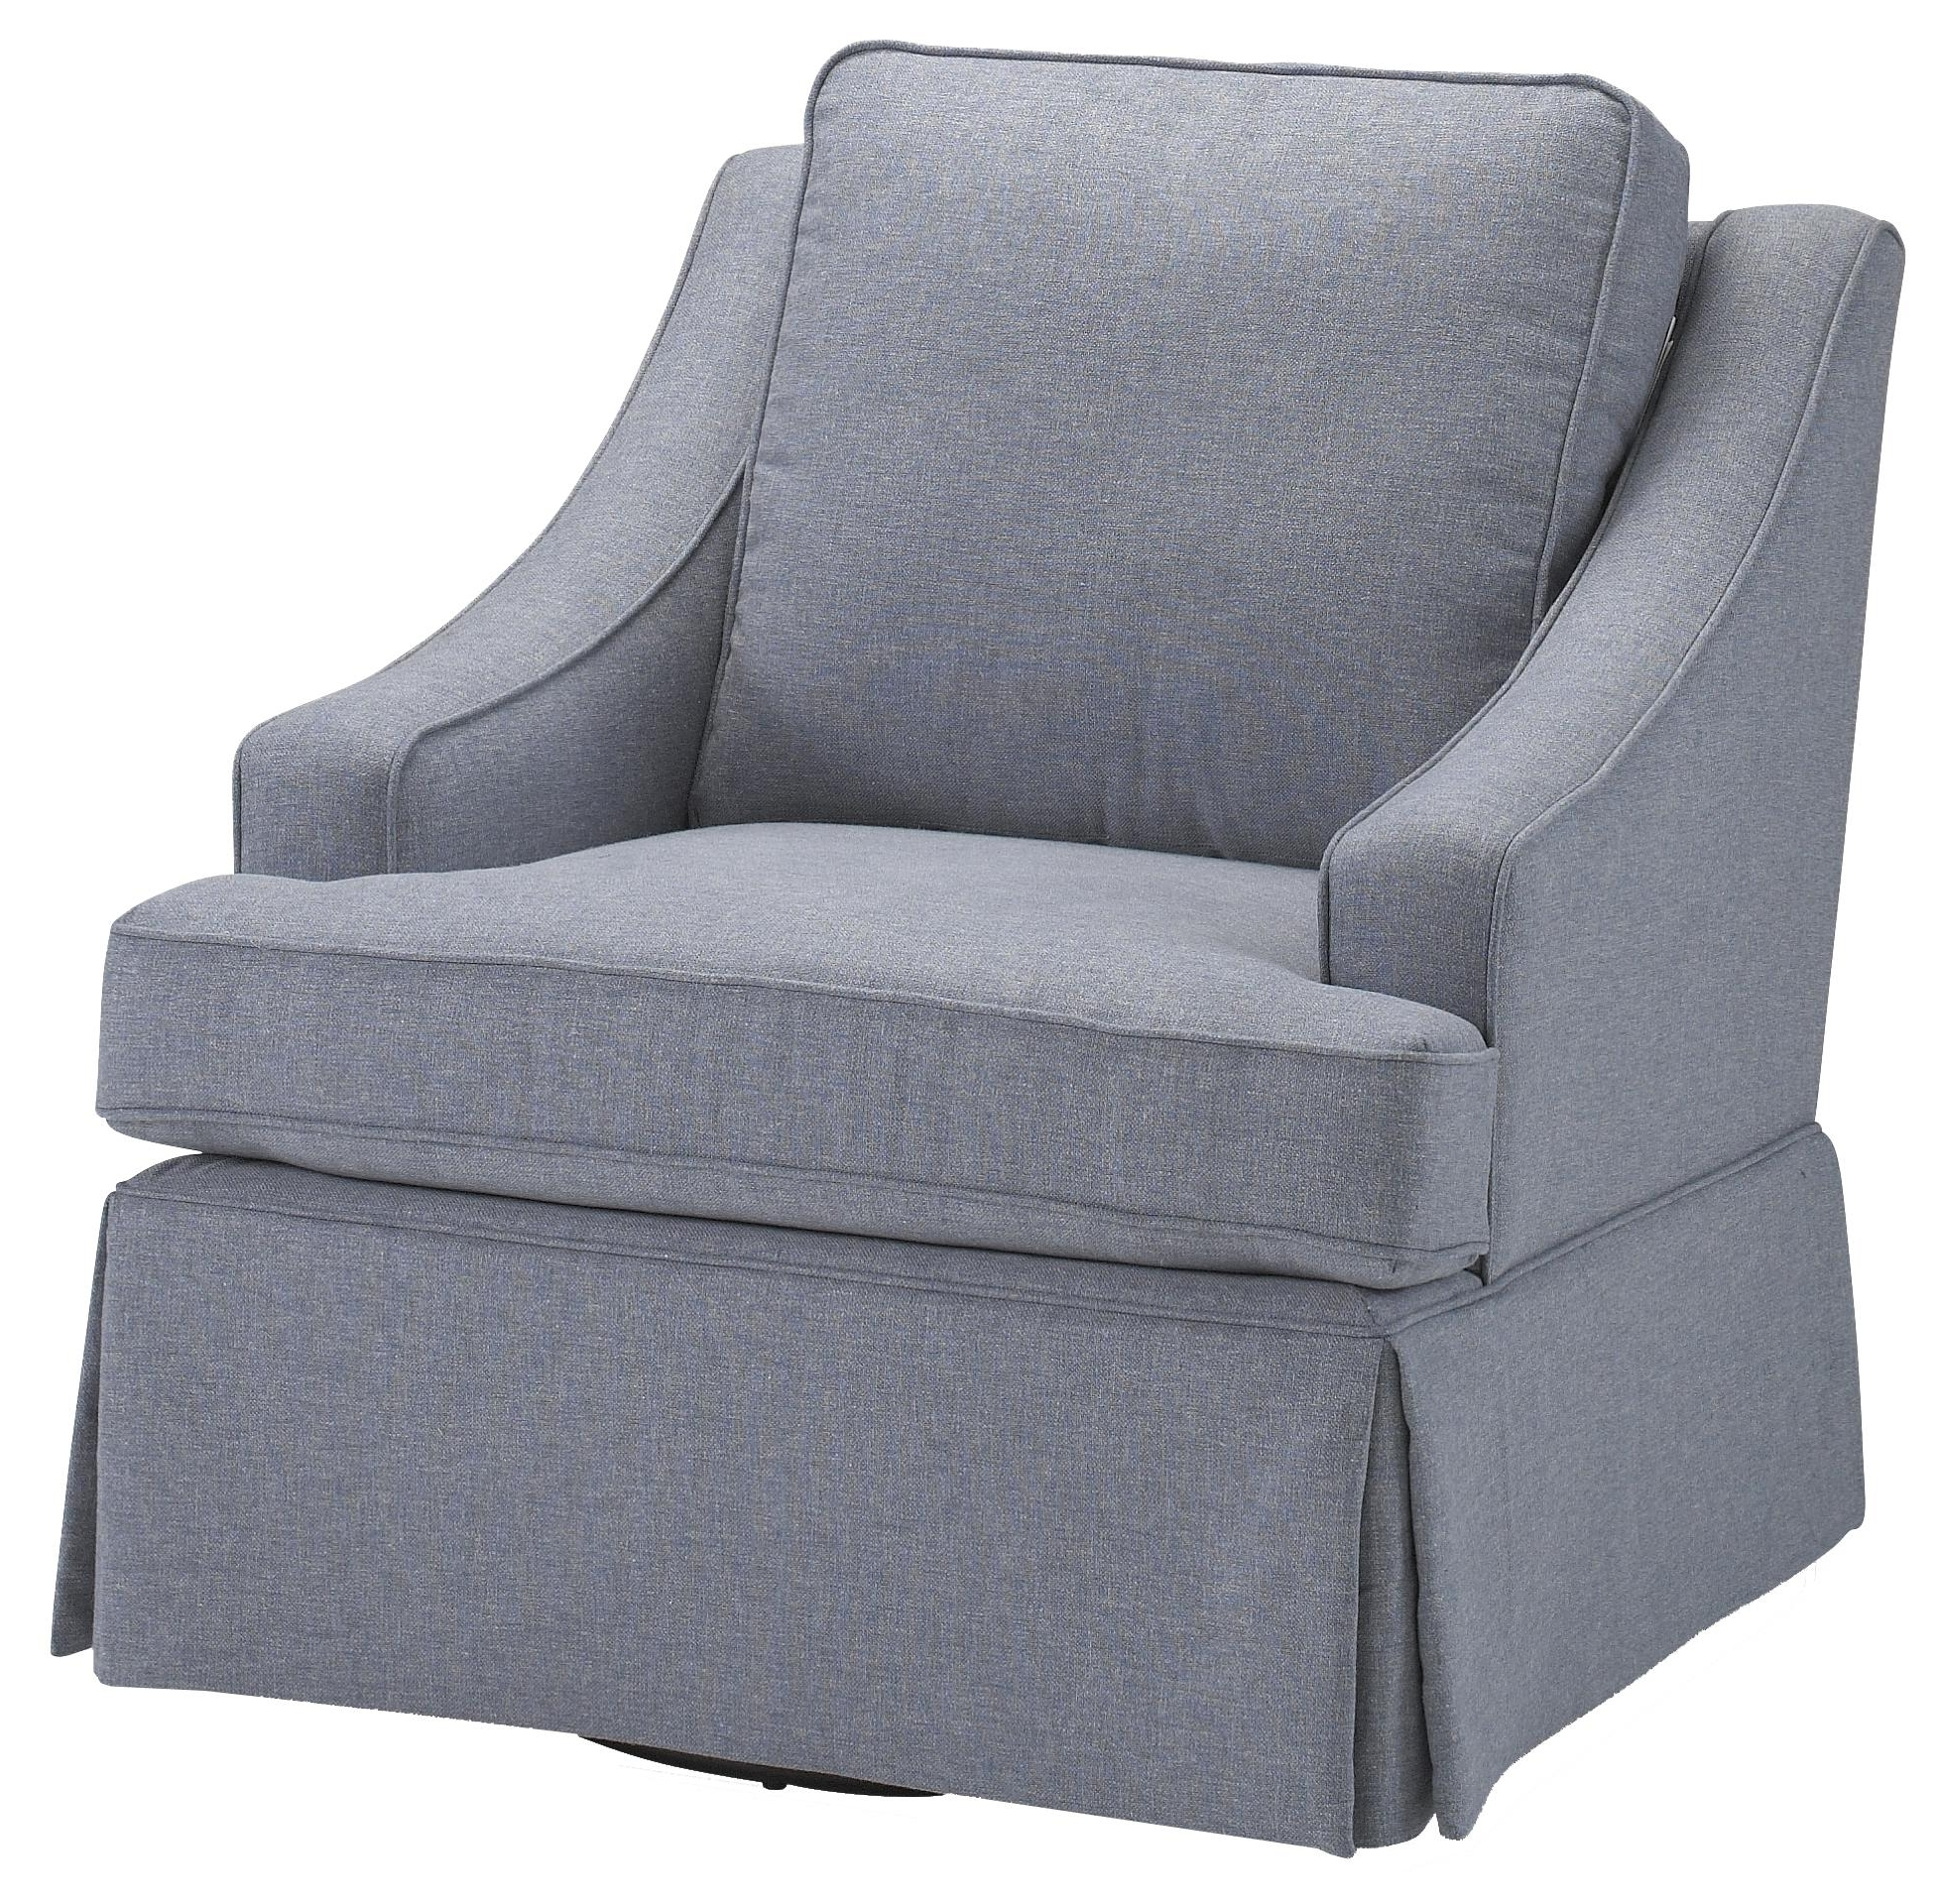 Contemporary Ayla Swivel Rocker Chairbest Home Furnishings Inside Most Up To Date Swivel Rocking Chairs (View 3 of 15)